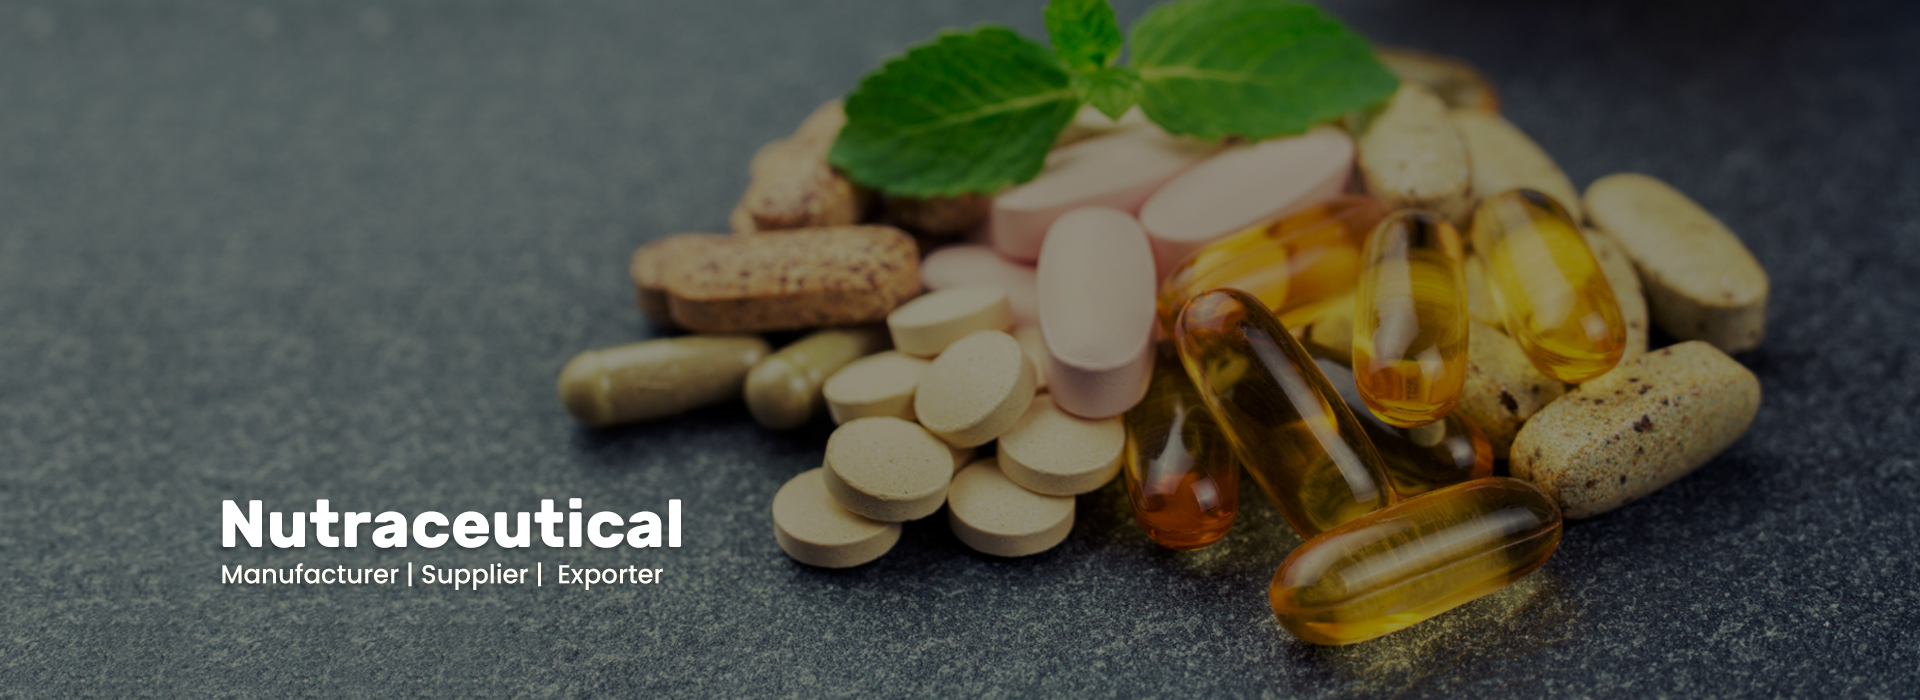 Nutraceutical Manufacturer, Third Party Pharmaceutical Manufacturer in India